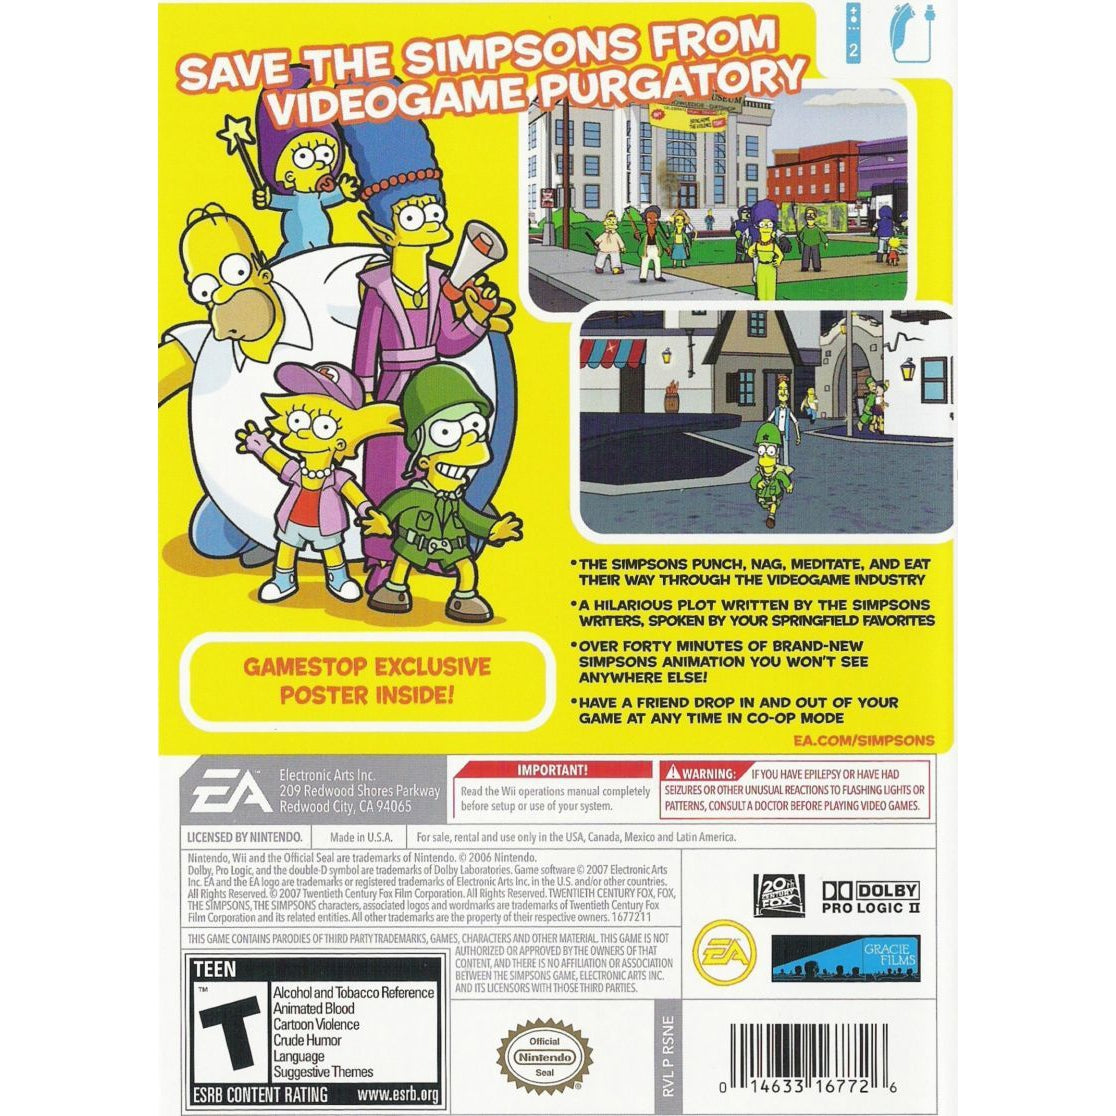 The Simpsons Game - Nintendo Wii Game Complete - YourGamingShop.com - Buy, Sell, Trade Video Games Online. 120 Day Warranty. Satisfaction Guaranteed.